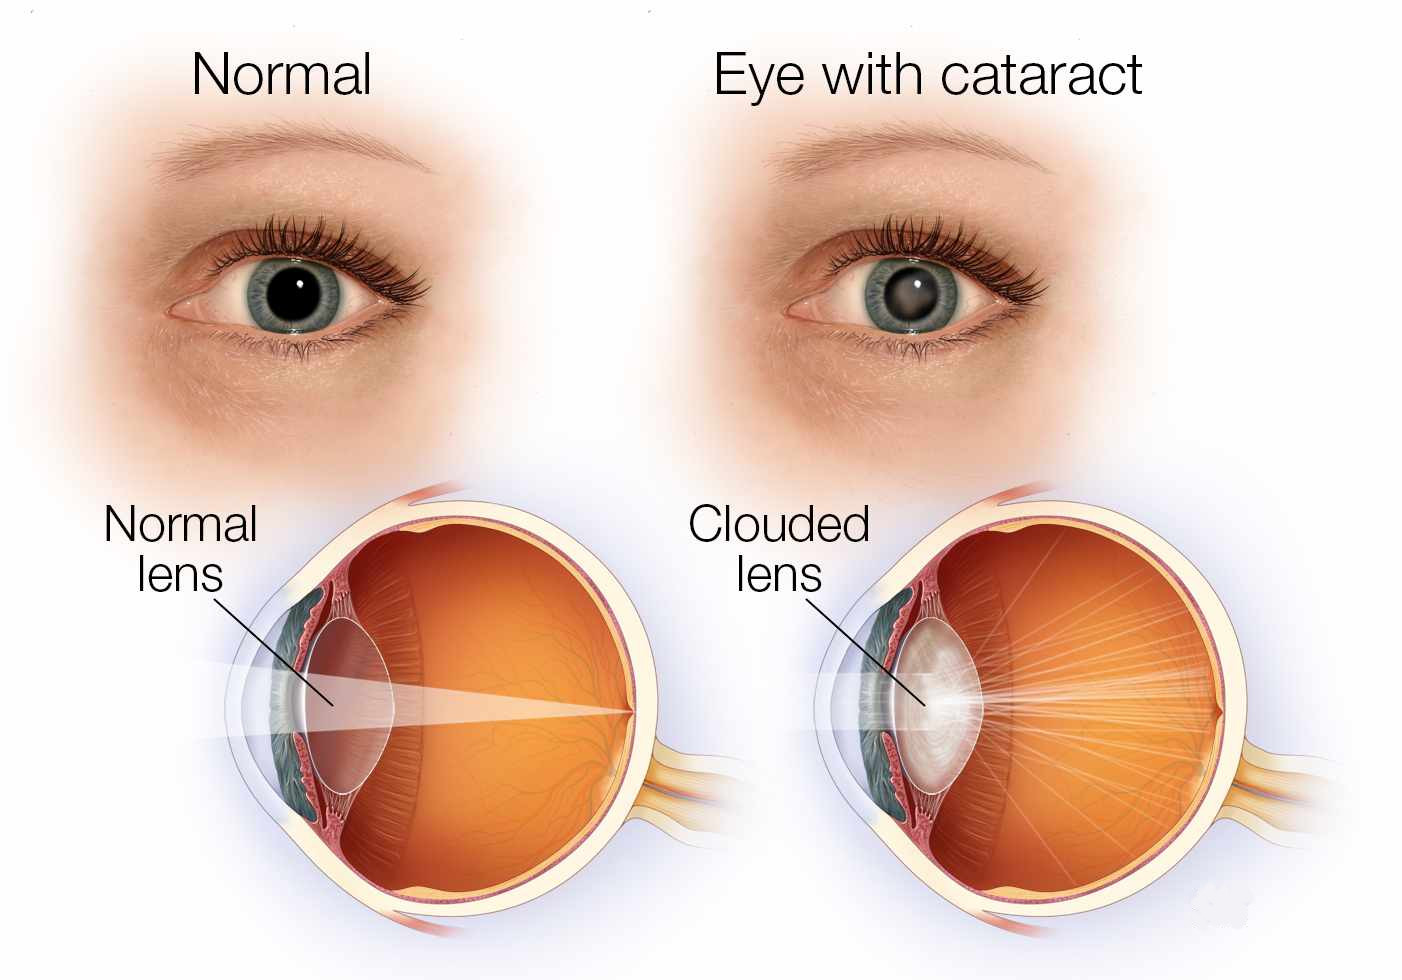 Cataract Dr Ramy Riad Consultant Ophthalmologist